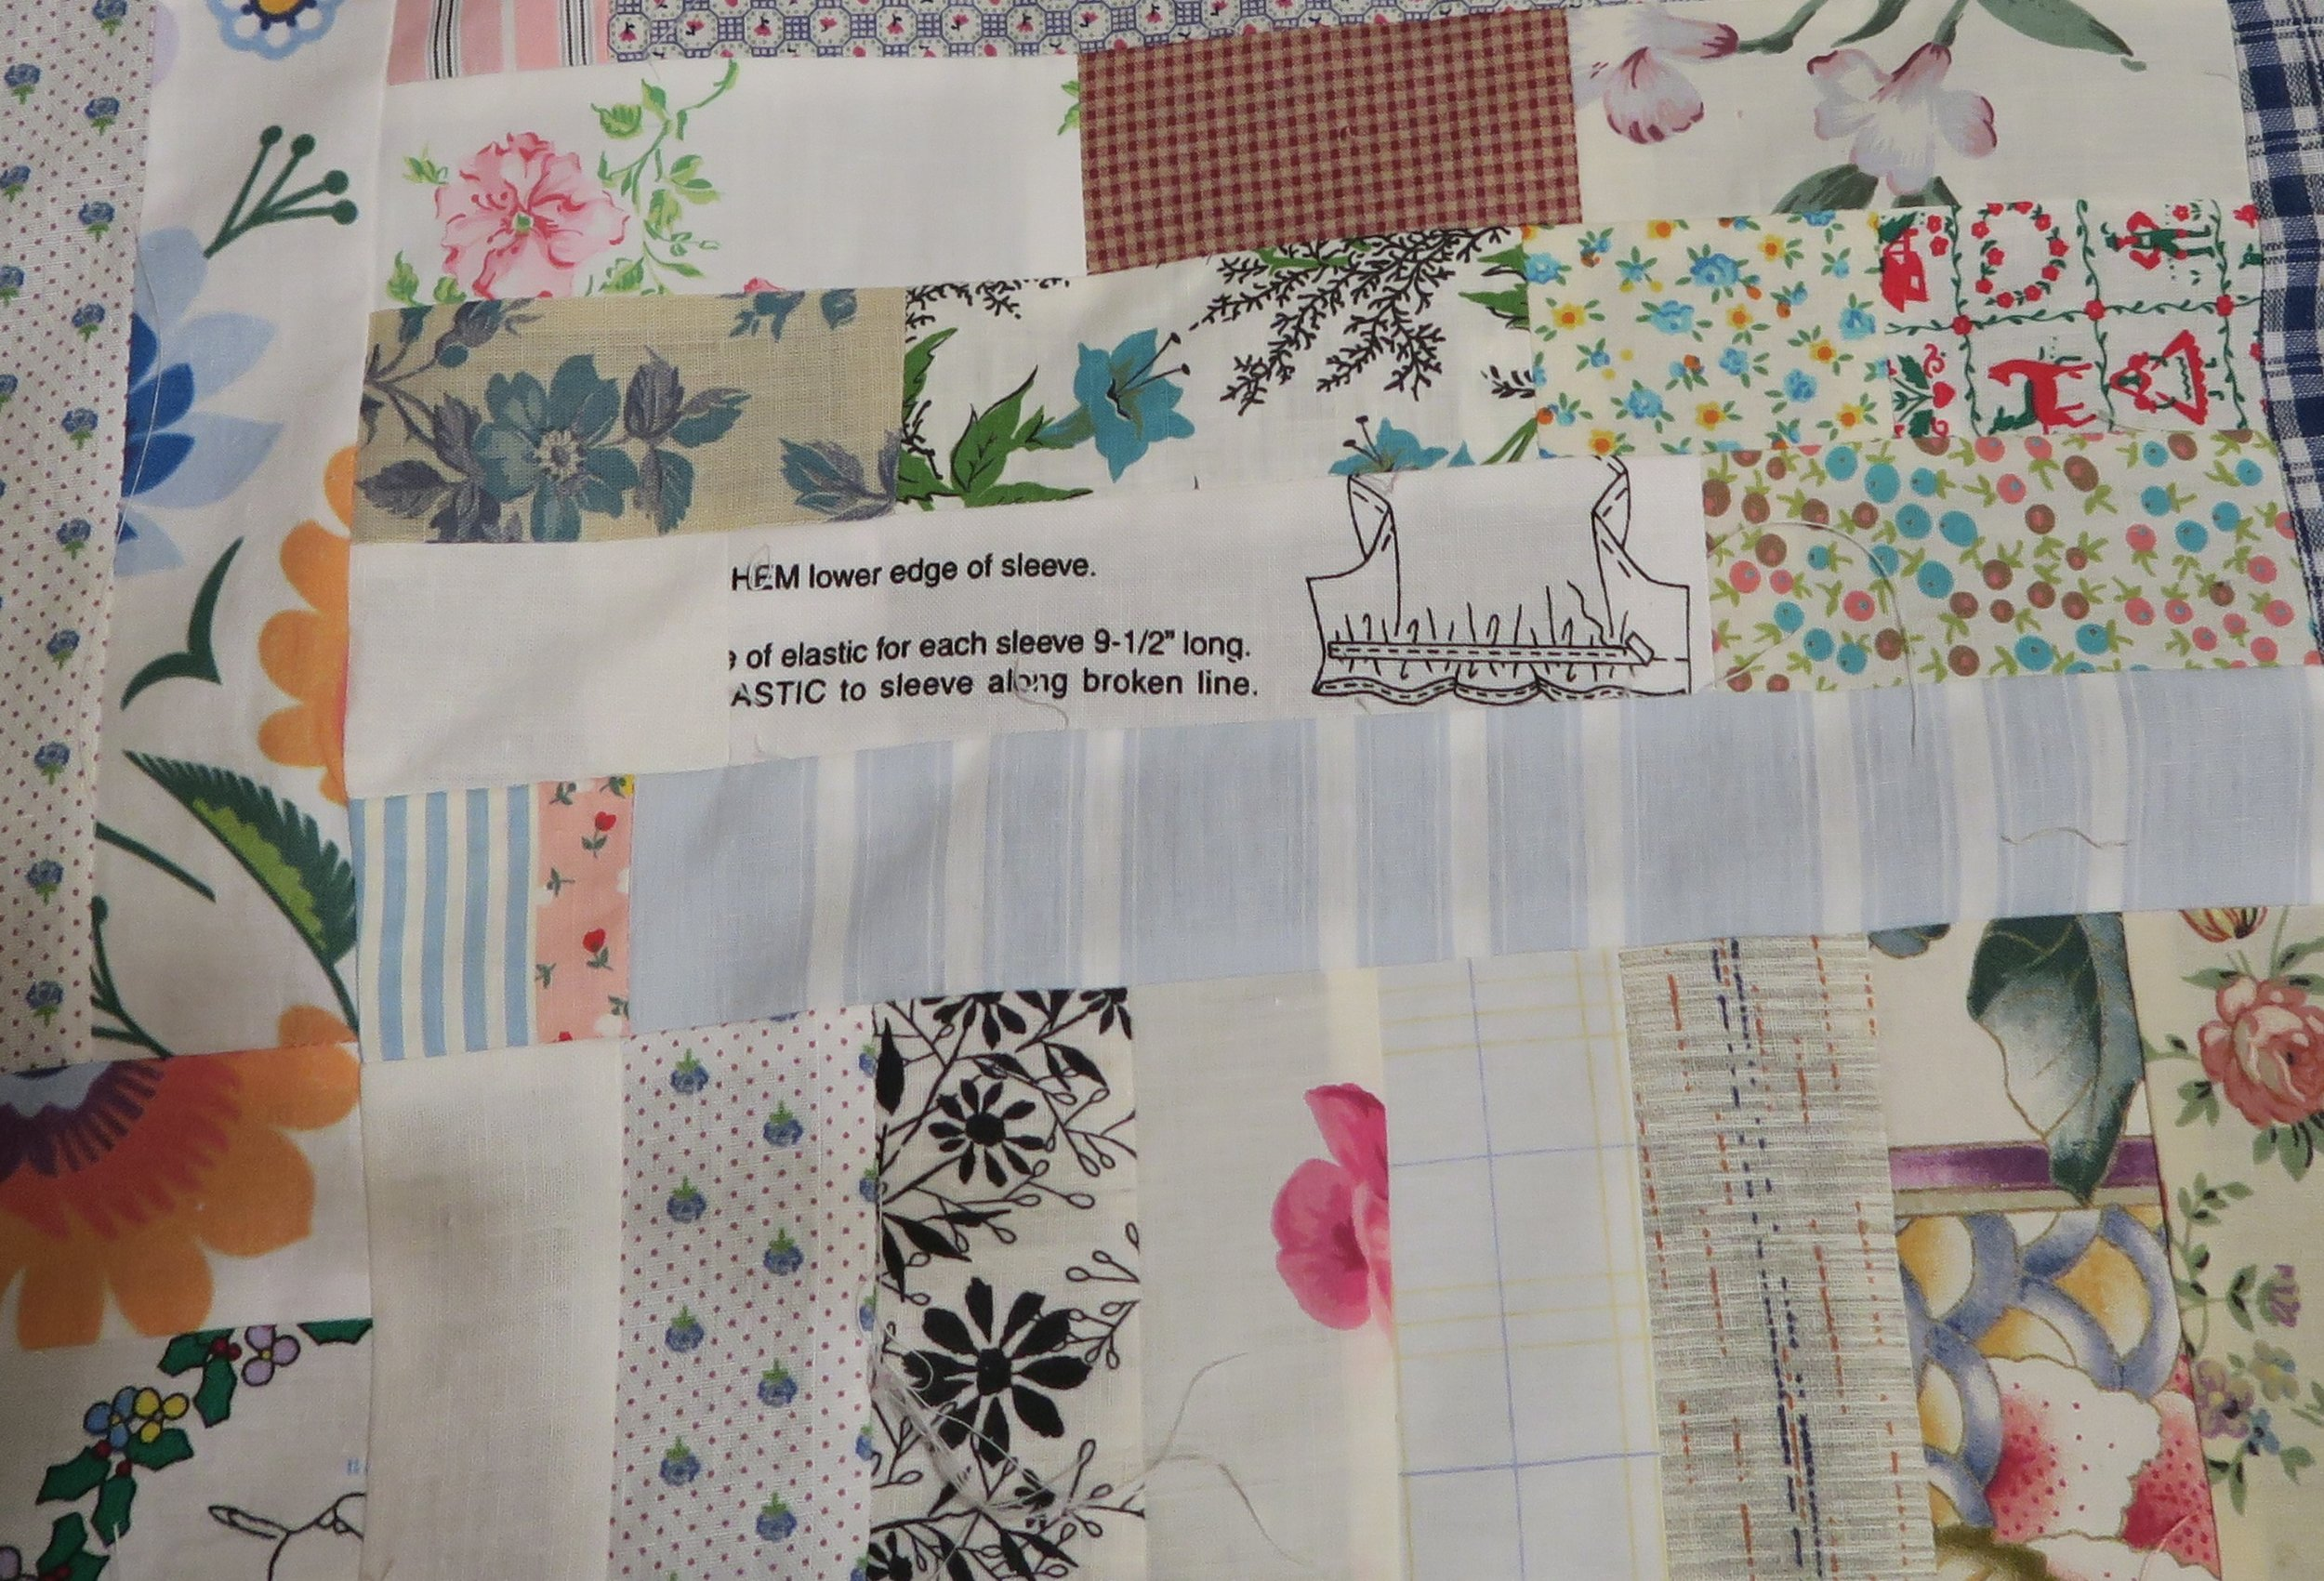 These are the kinds of things I like to put in this kind of quilt.  These were leftover from various low volume things I had made.  I tried to stick to pretty much white or off white backgrounds - and keep the print to minimum, though at times I didn't do that very well.